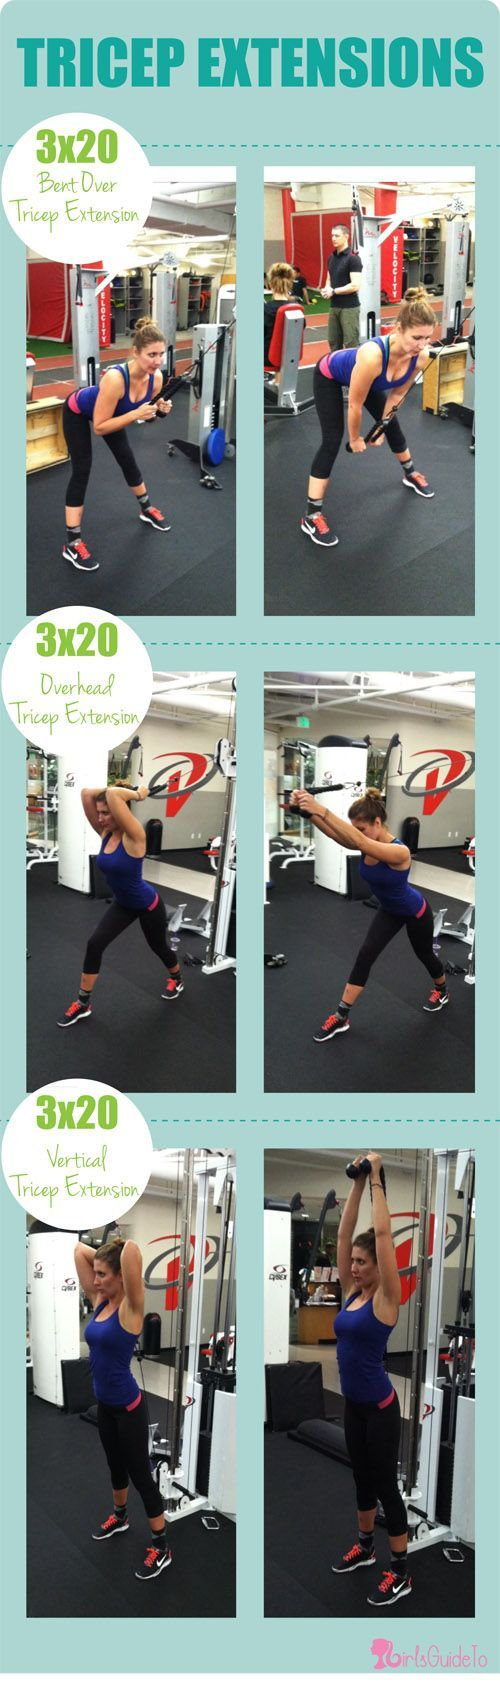 GirlsGuideTo | Workout Wednesday: Tighten Up With These 5 Cable Machine Exercise